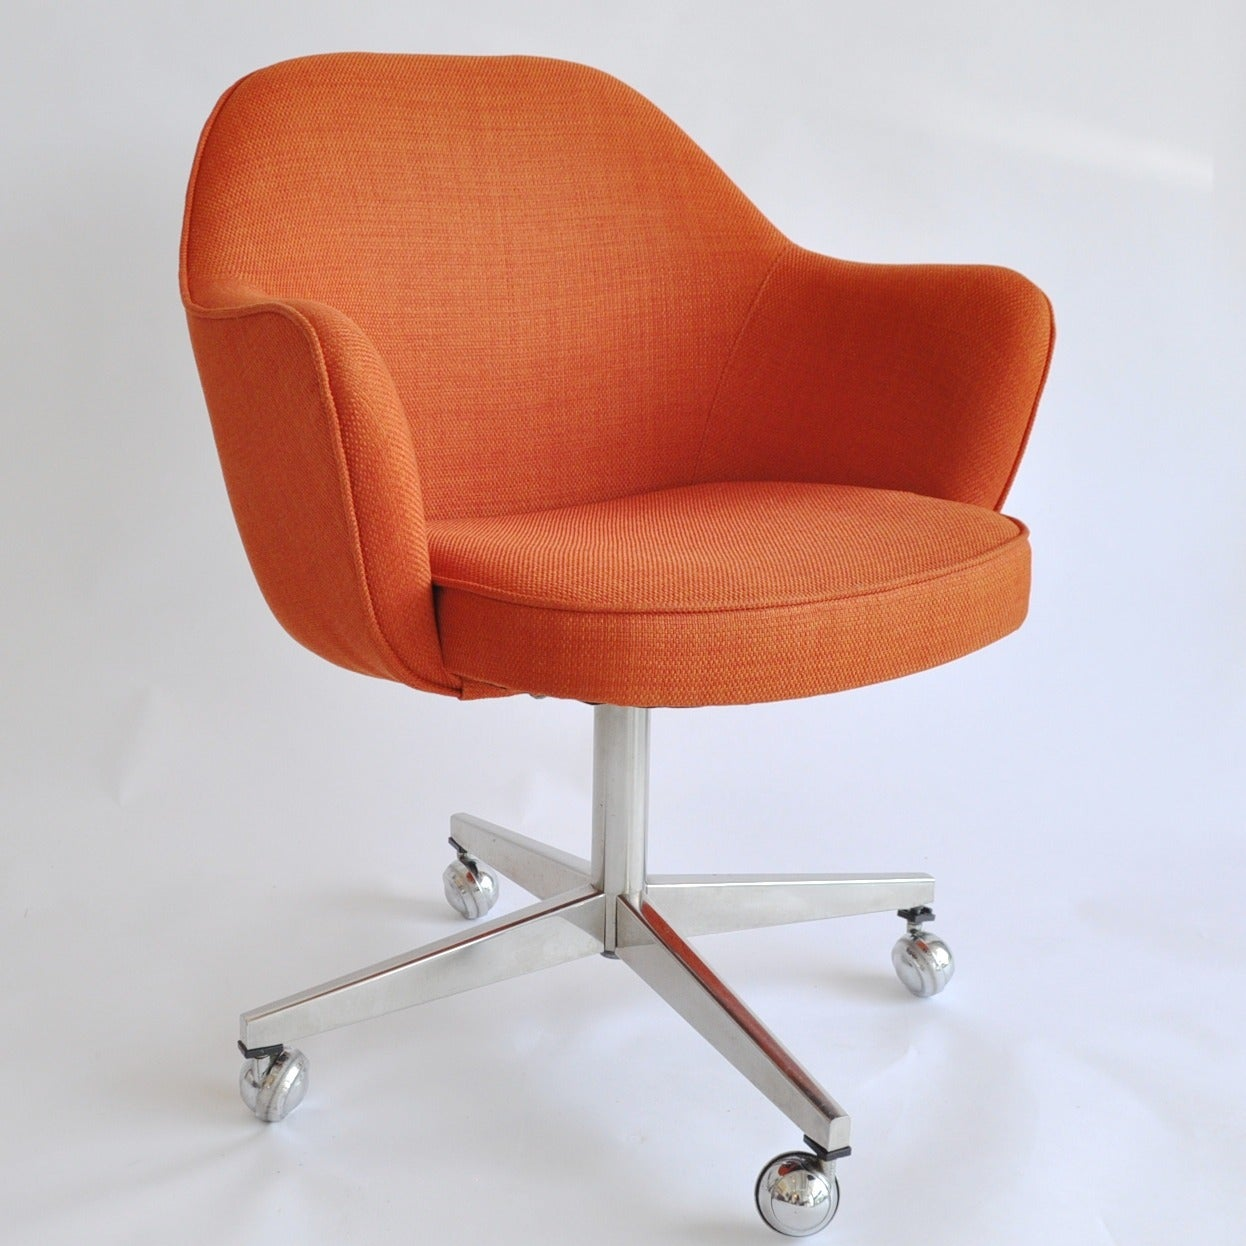 Saarinen Style Orange Linen Desk Chairs at 1stdibs